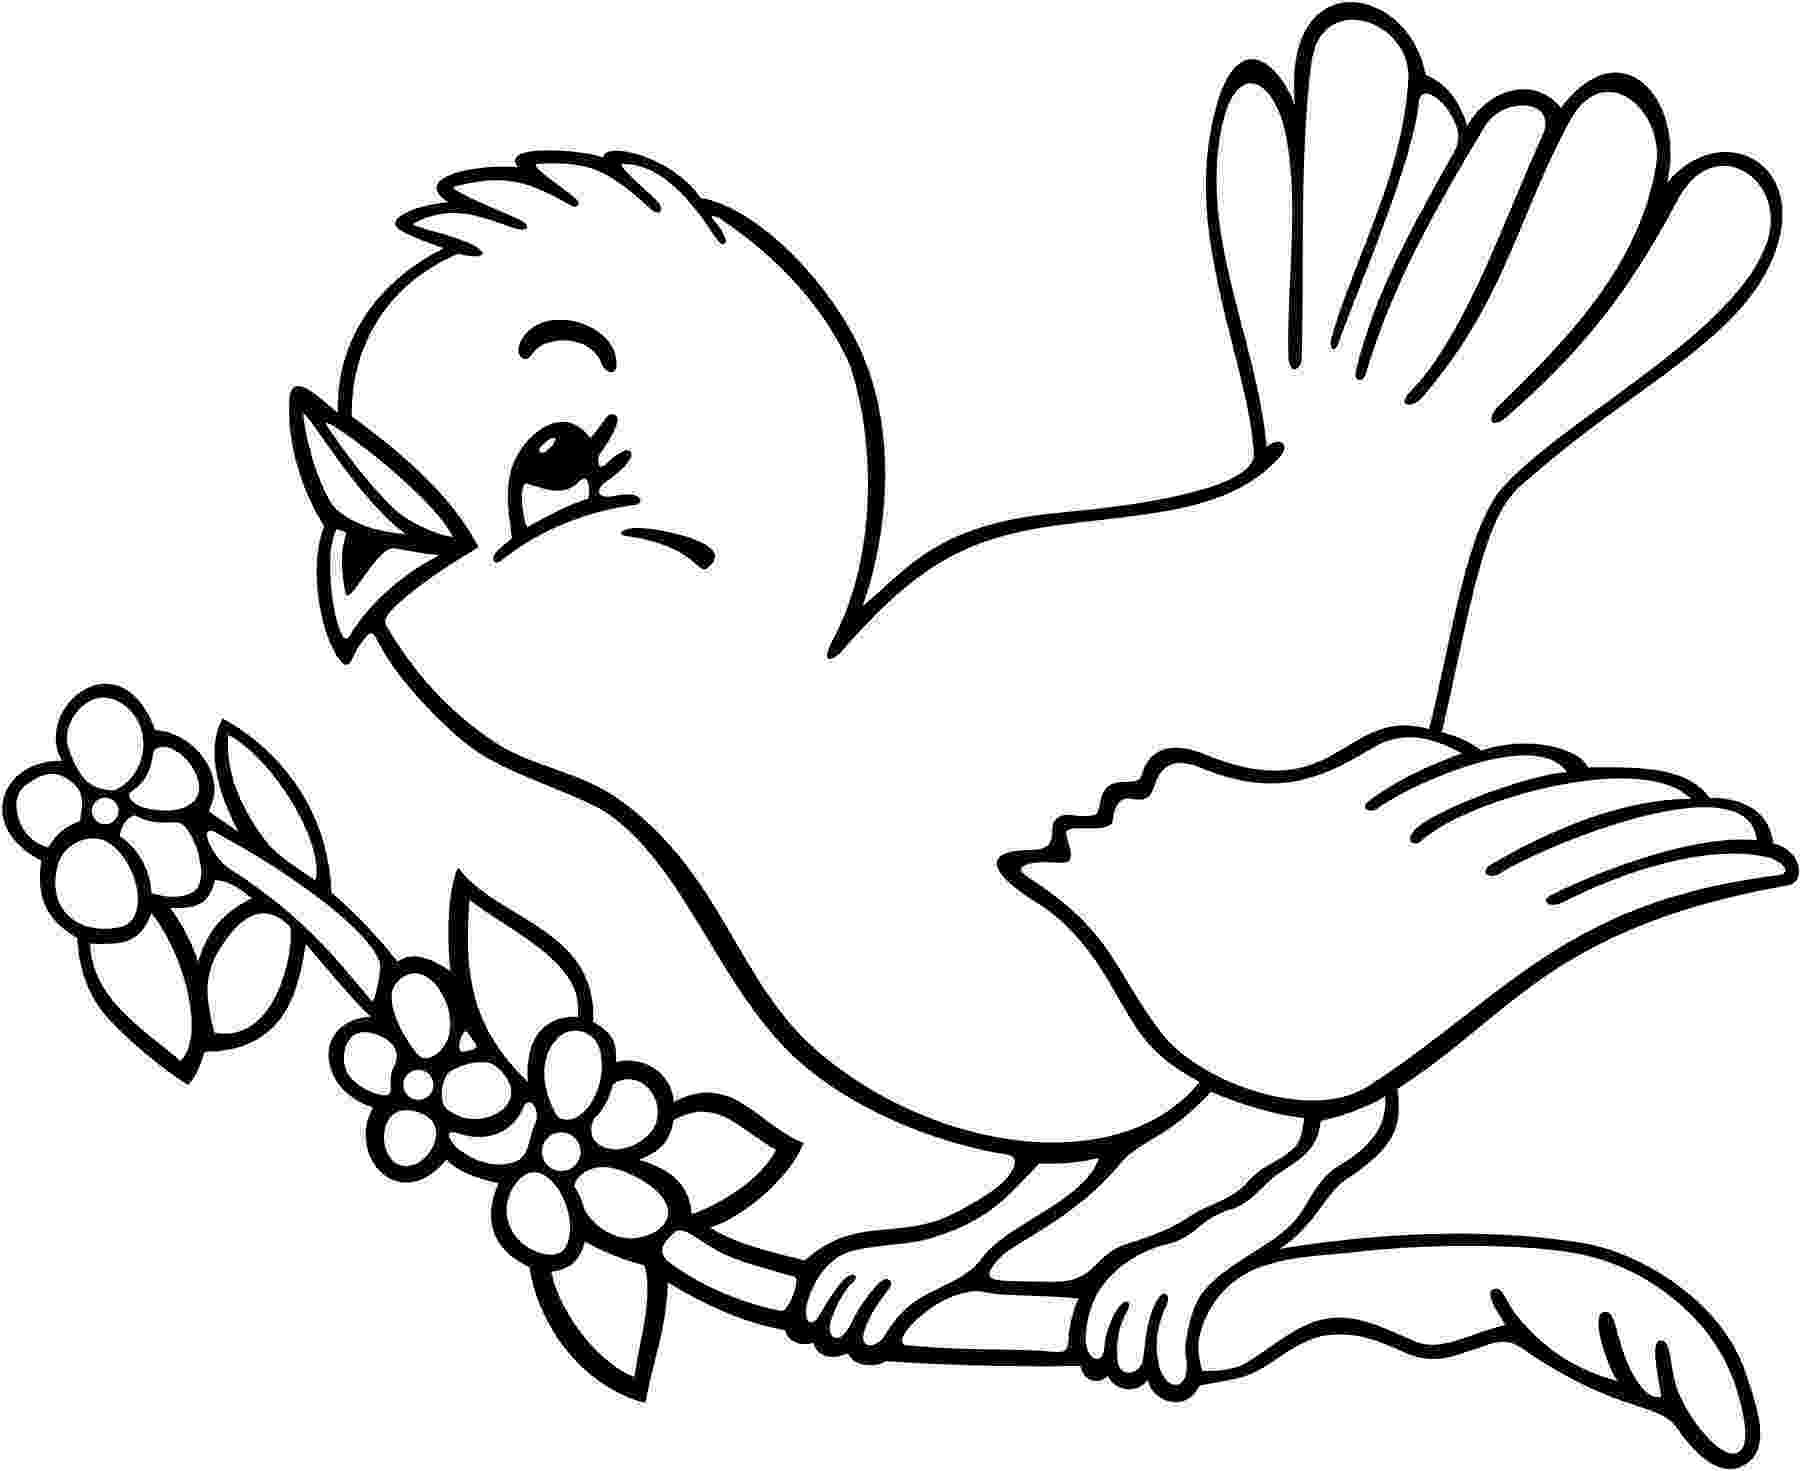 bird colouring pages for kids birds coloring pages for kids bird pages colouring